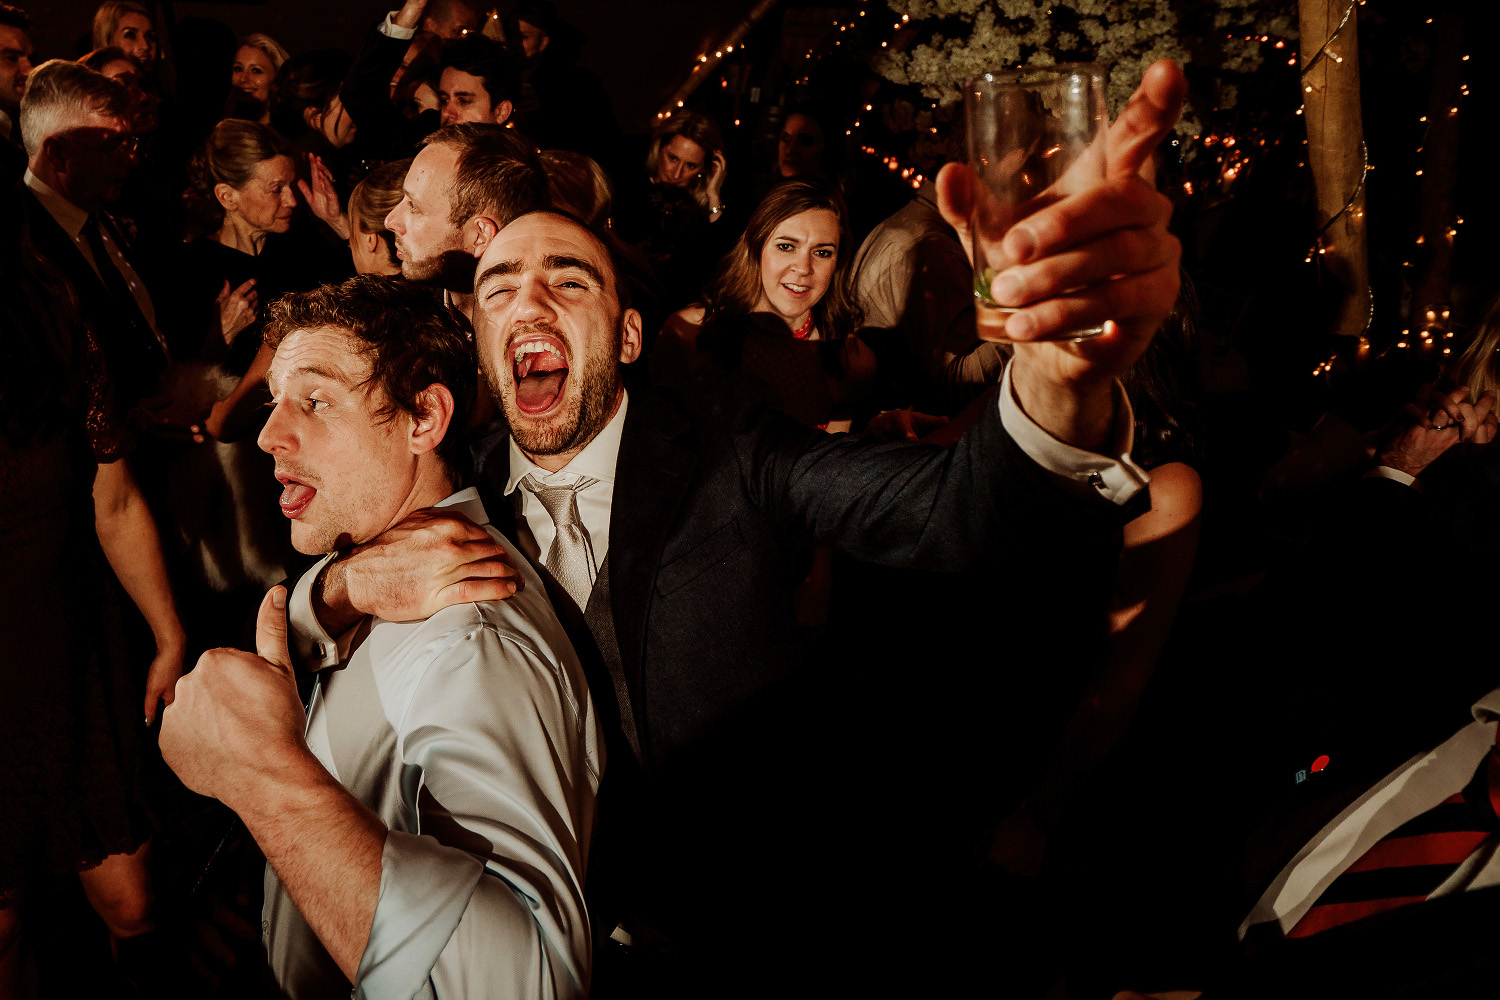 male wedding guest cheering and raising glass